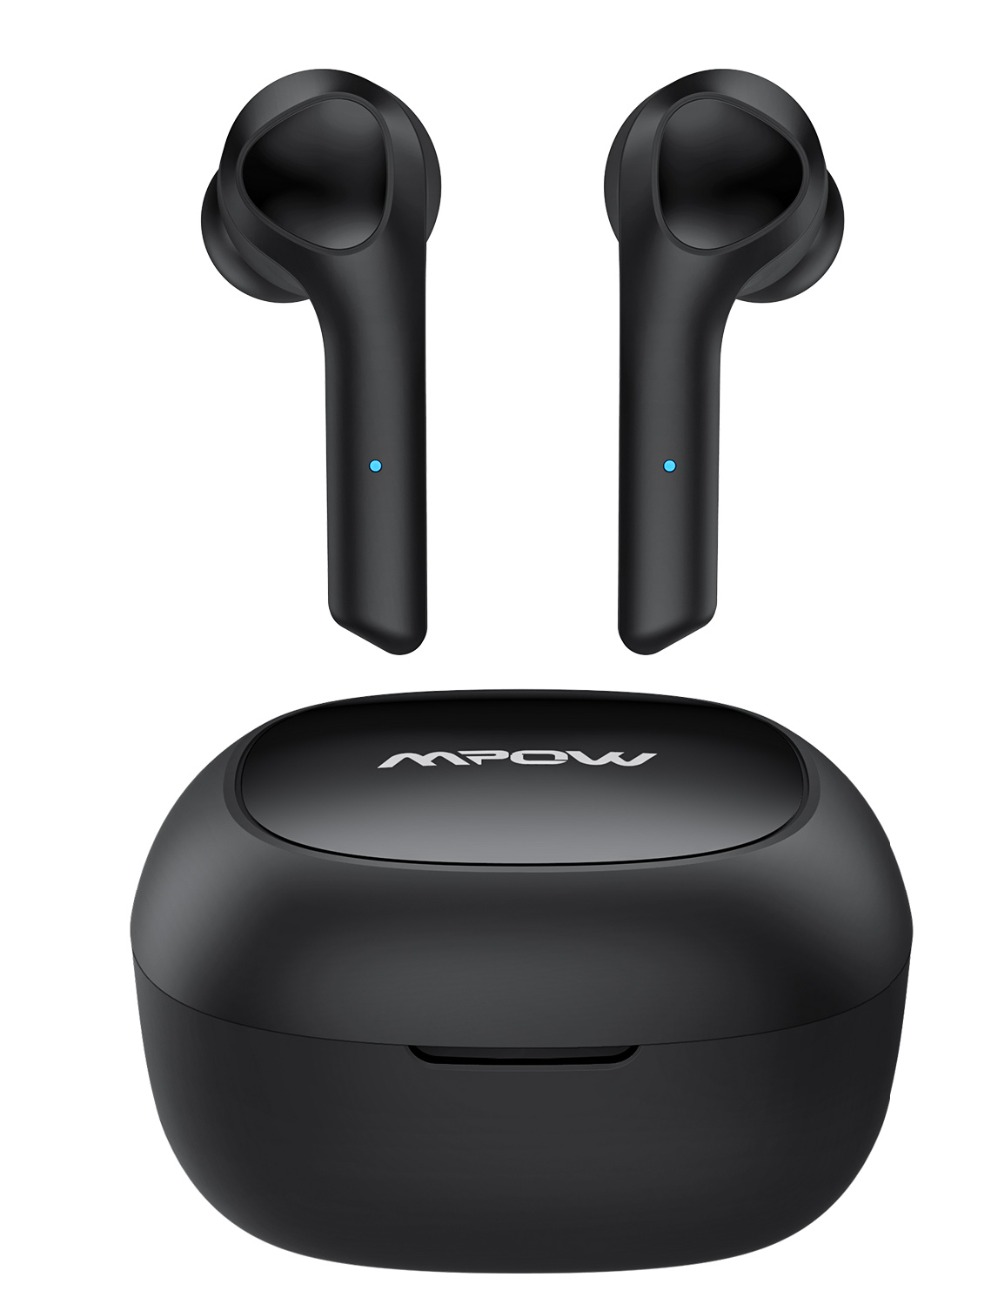 Original Mpow MS1 Wireless TWS Earphones Bluetooth Earbuds Touch Control with Charging Case 25Hrs Playtime Earphopne with Mic (7)